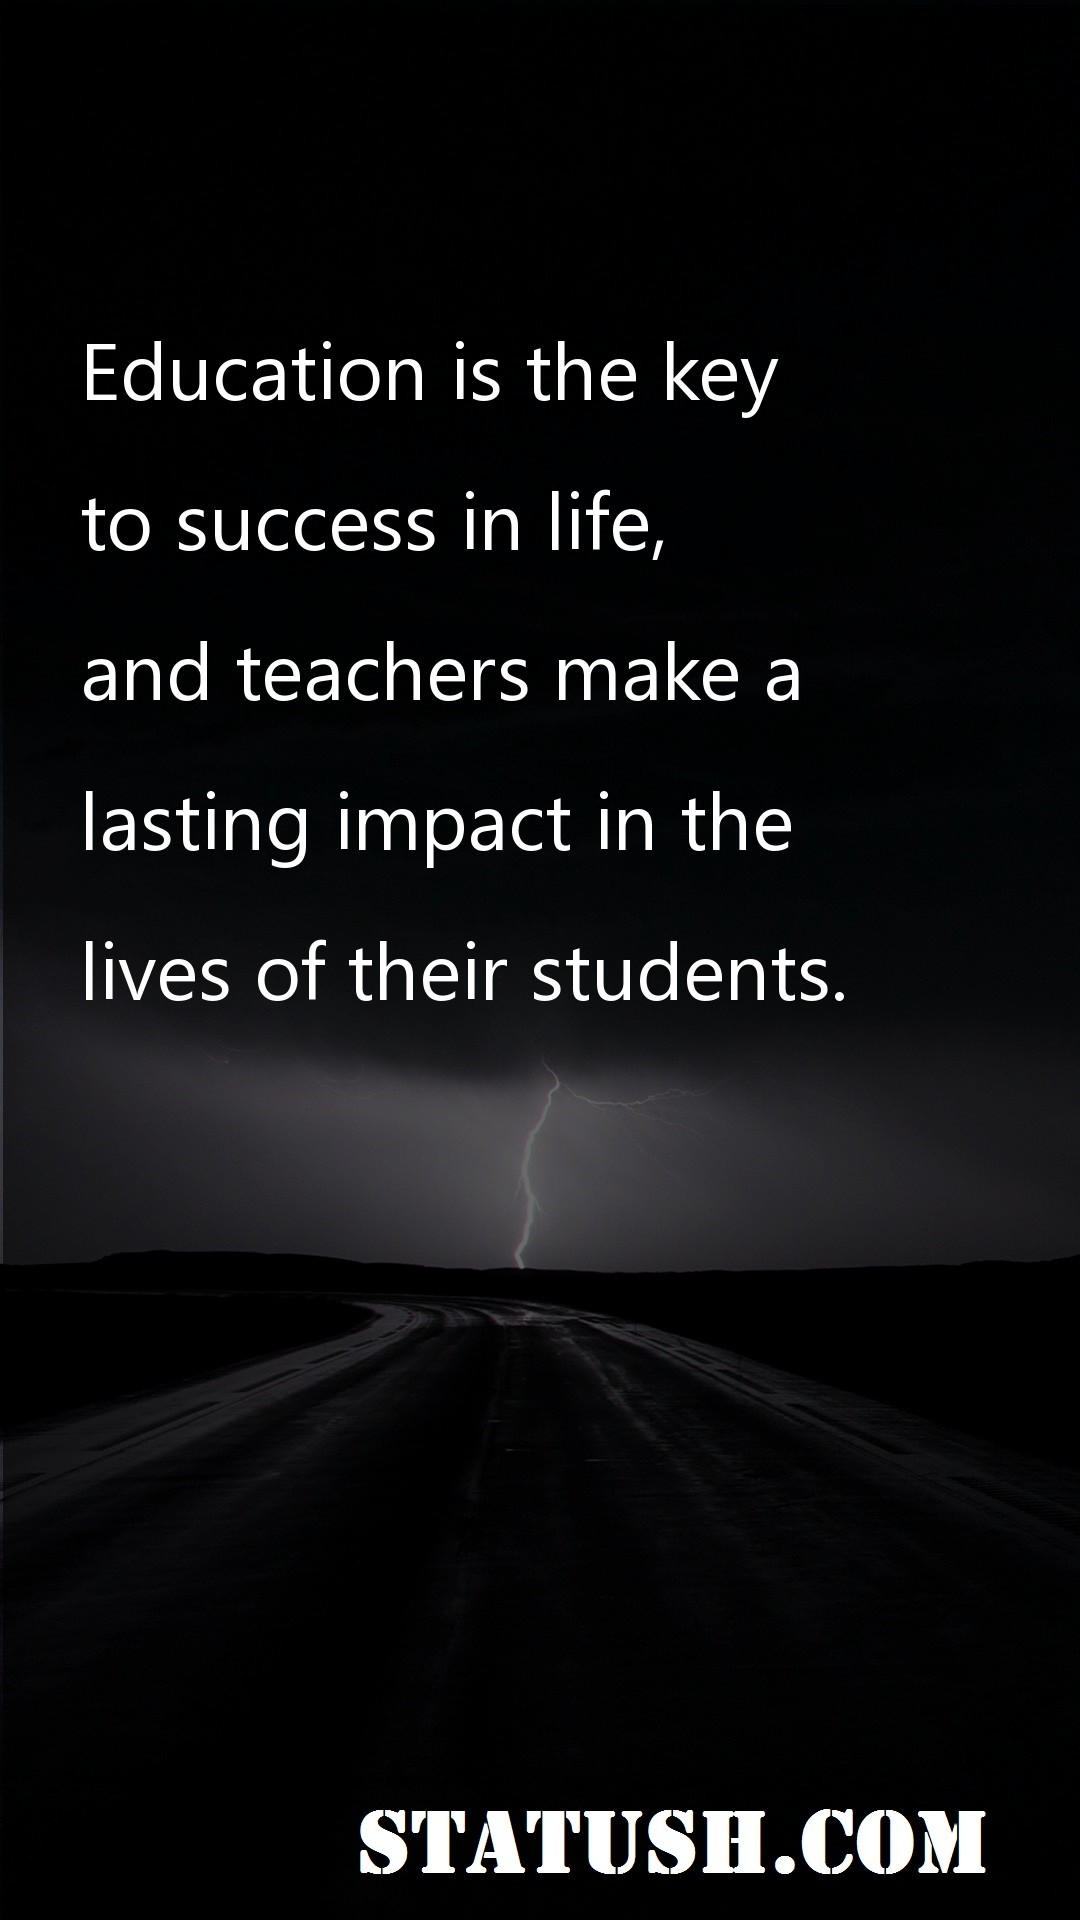 Education is the key to success in life